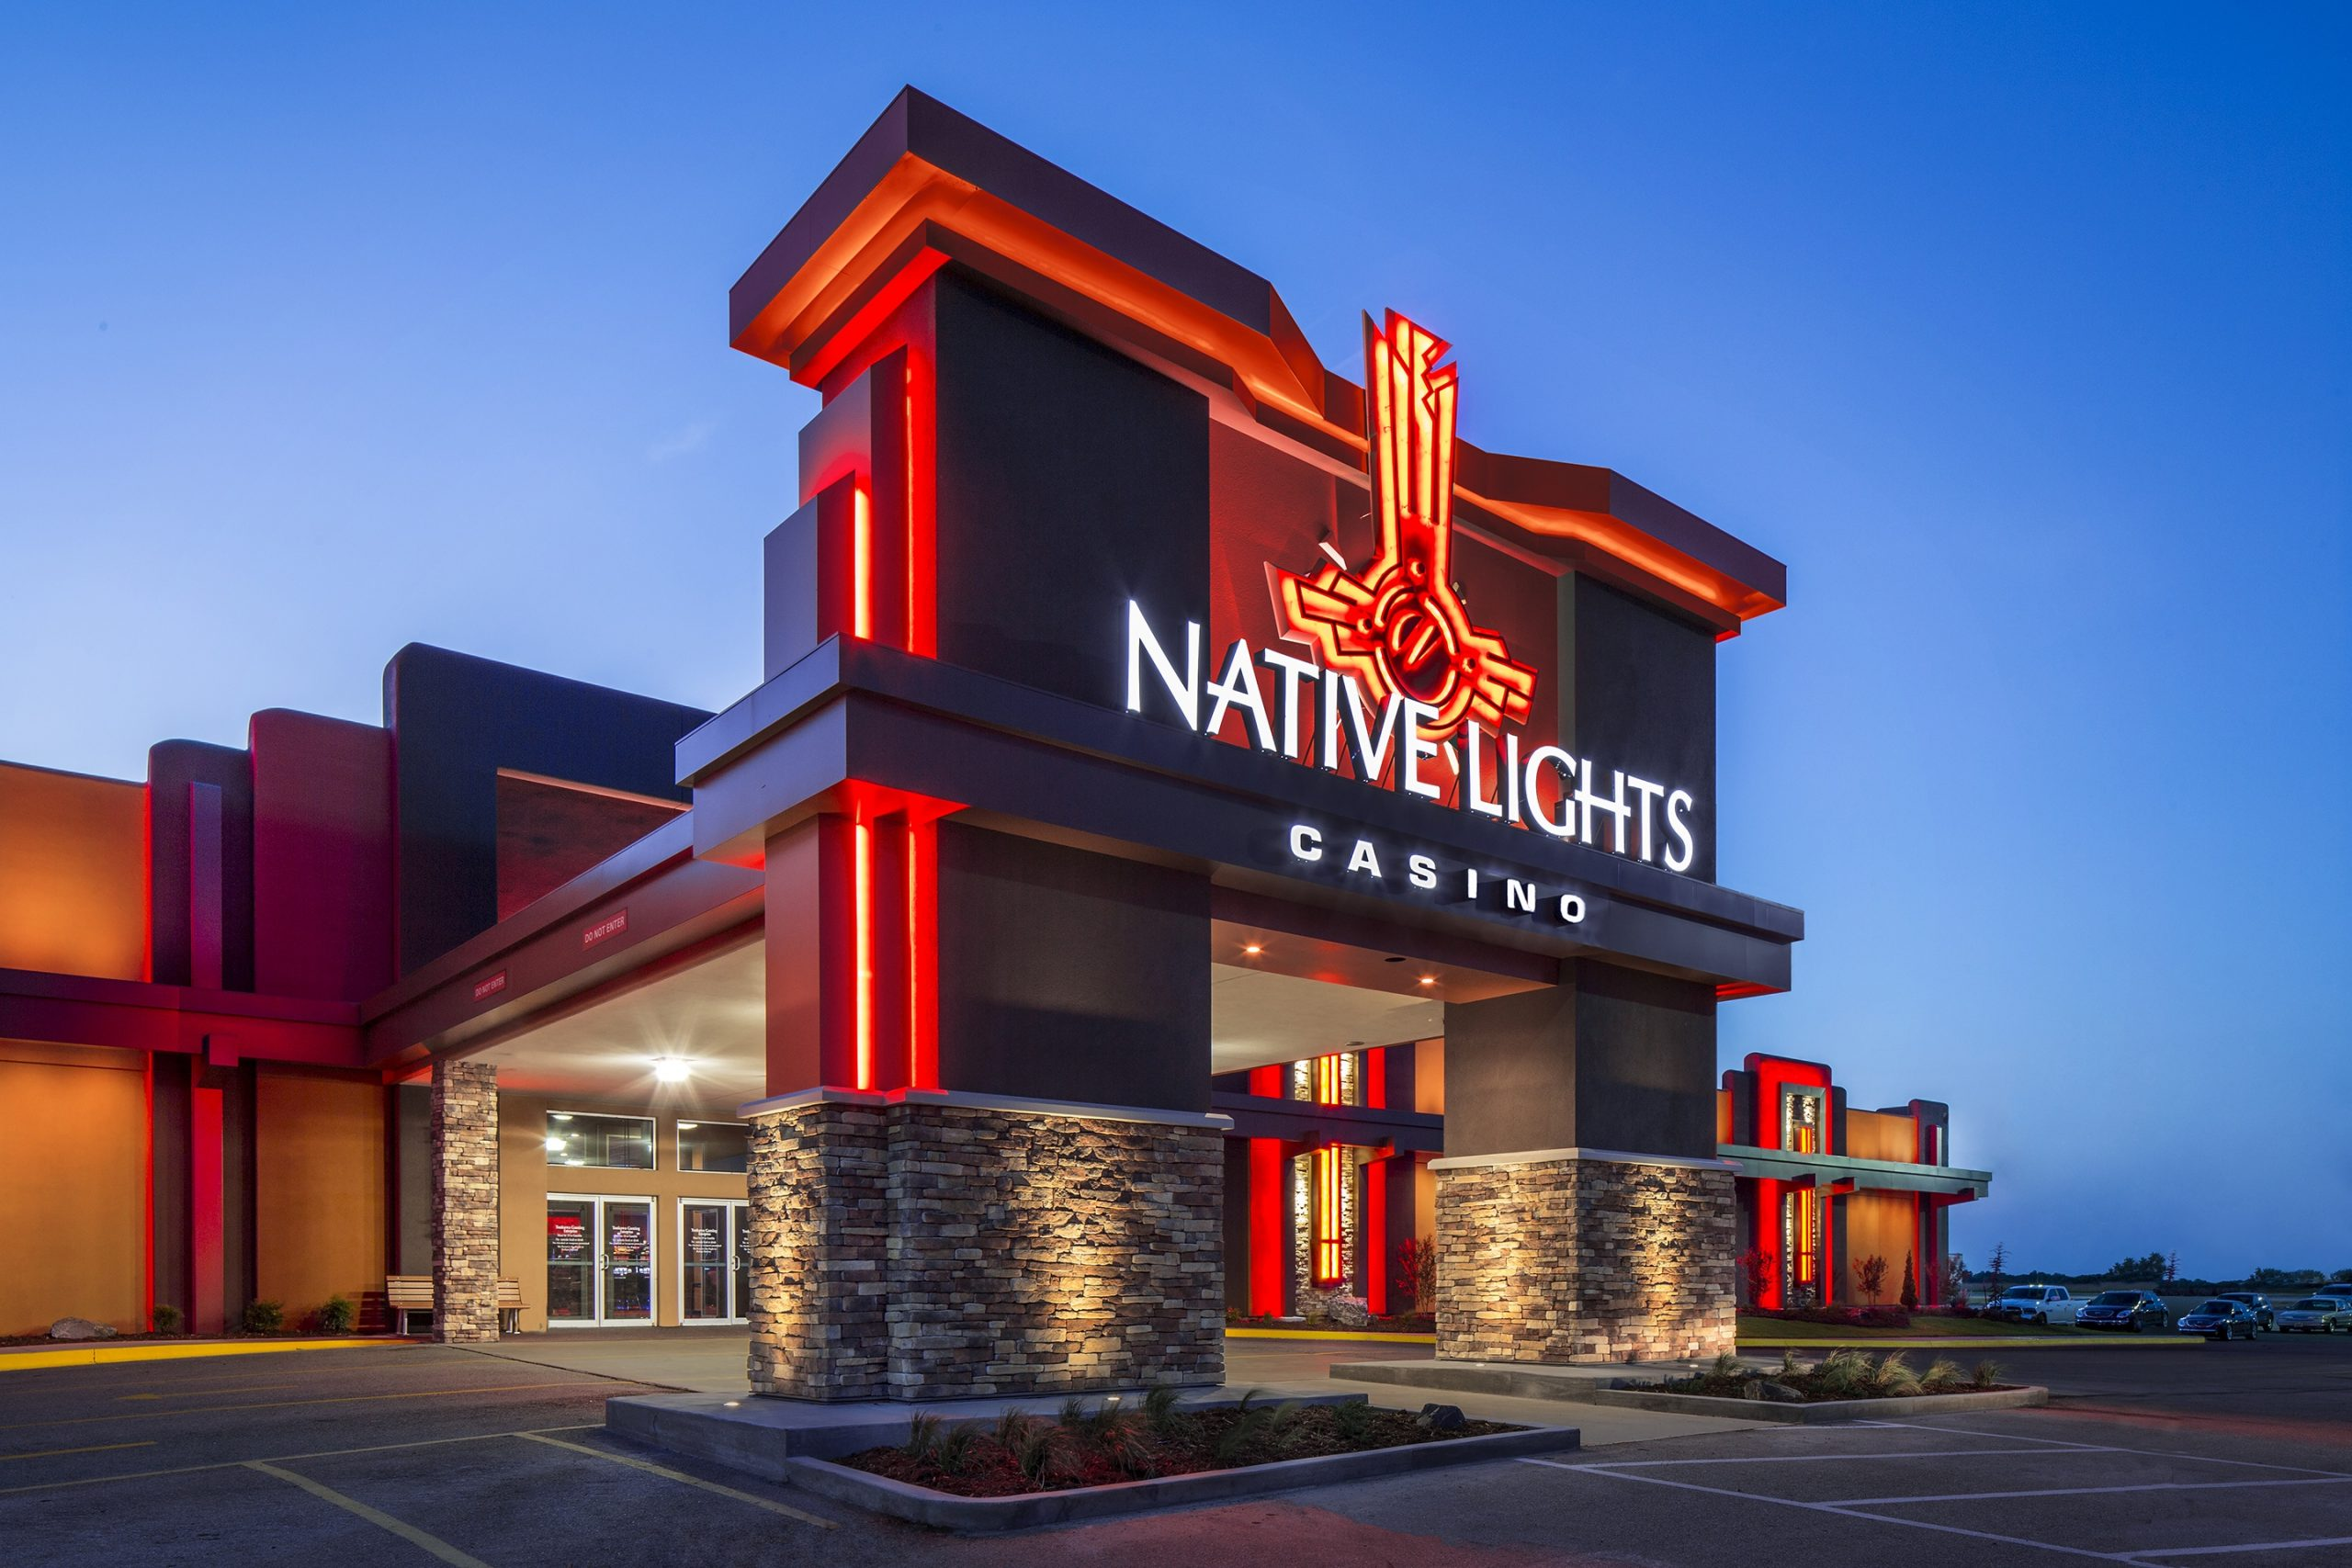 10 Things You Should Know About Native American Casinos Casino